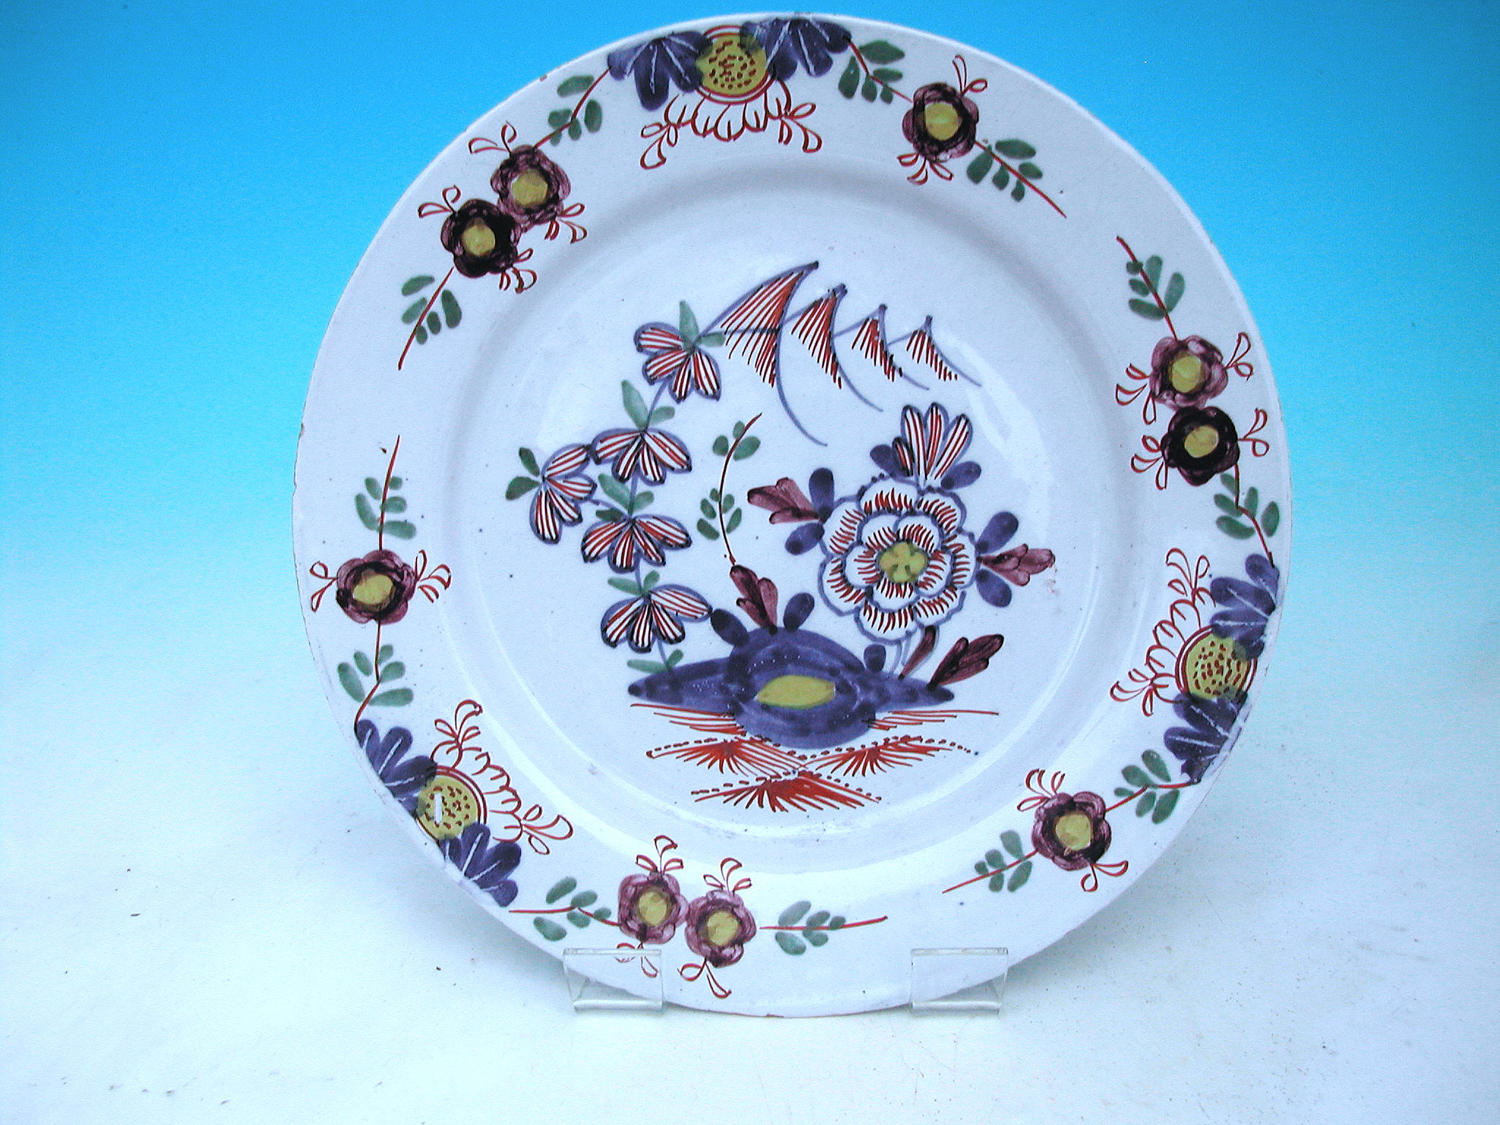 18thc English Polychrome Delft Plate Decorated With Flowers & Leaves.